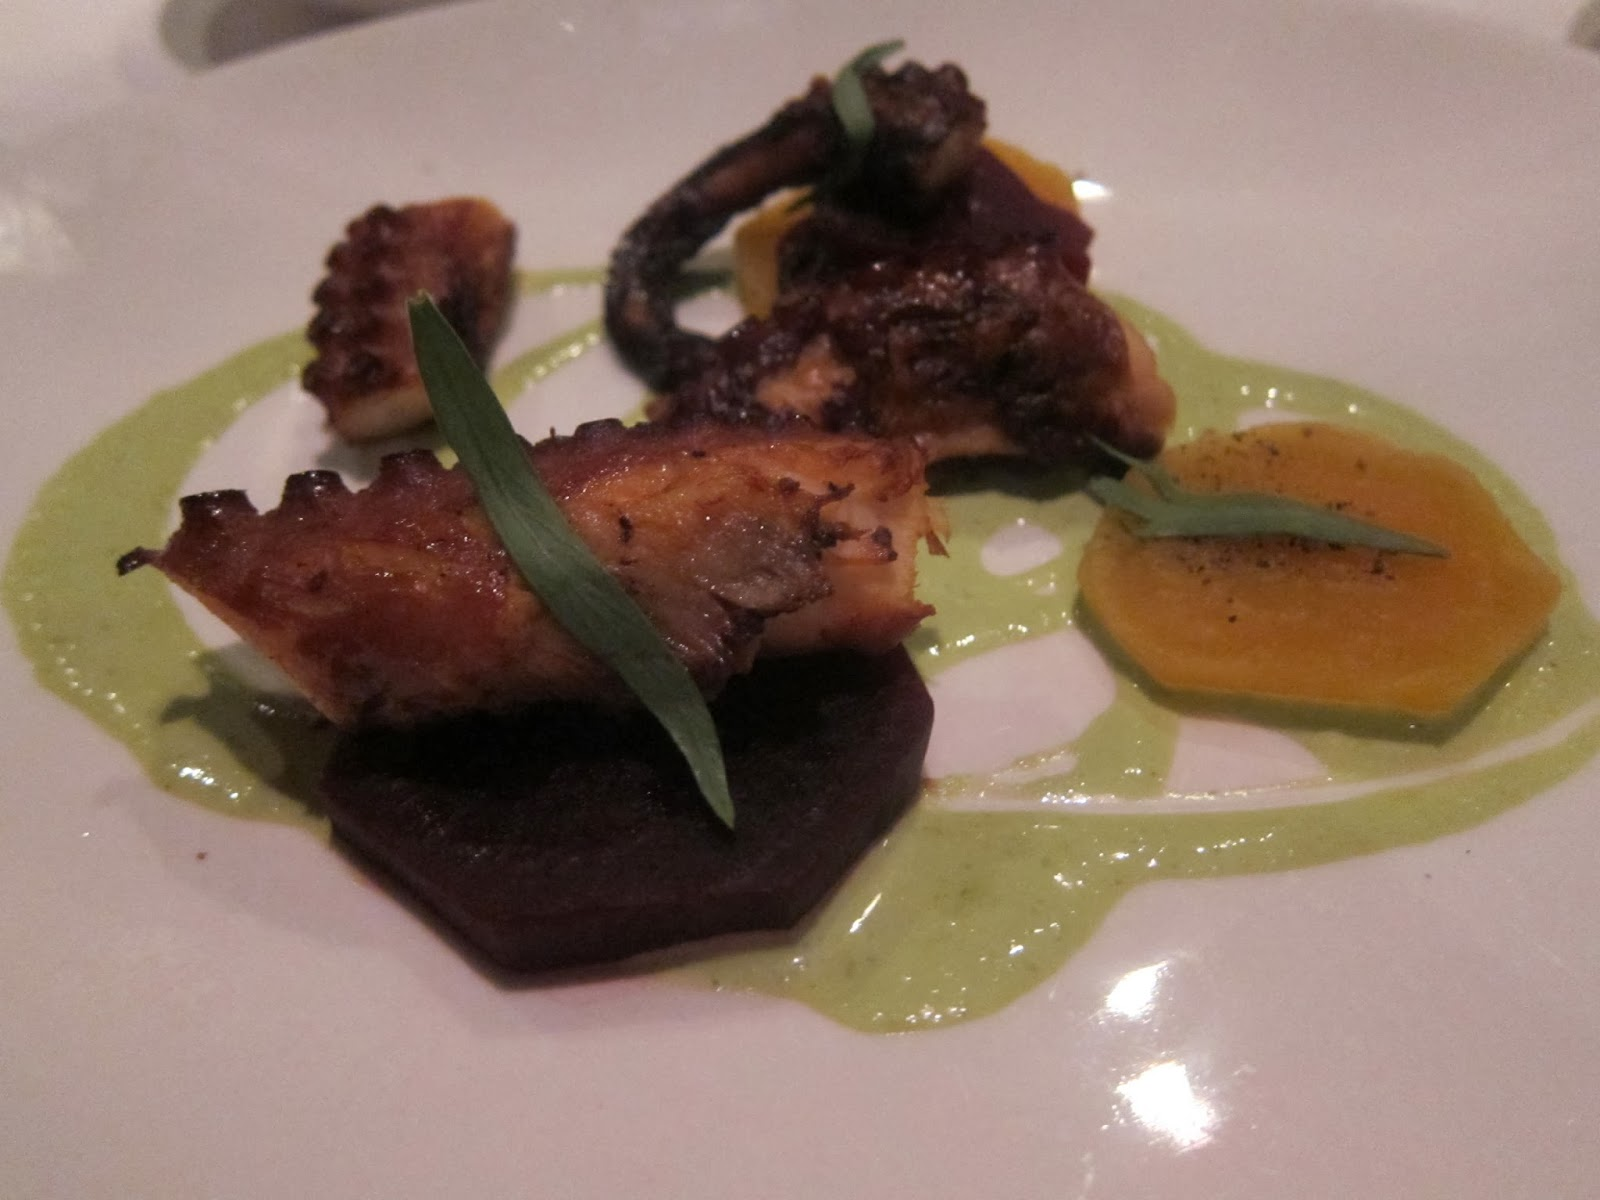 Grilled Octopus at FISH Restaurant in Marlborough, MA | The Economical Eater